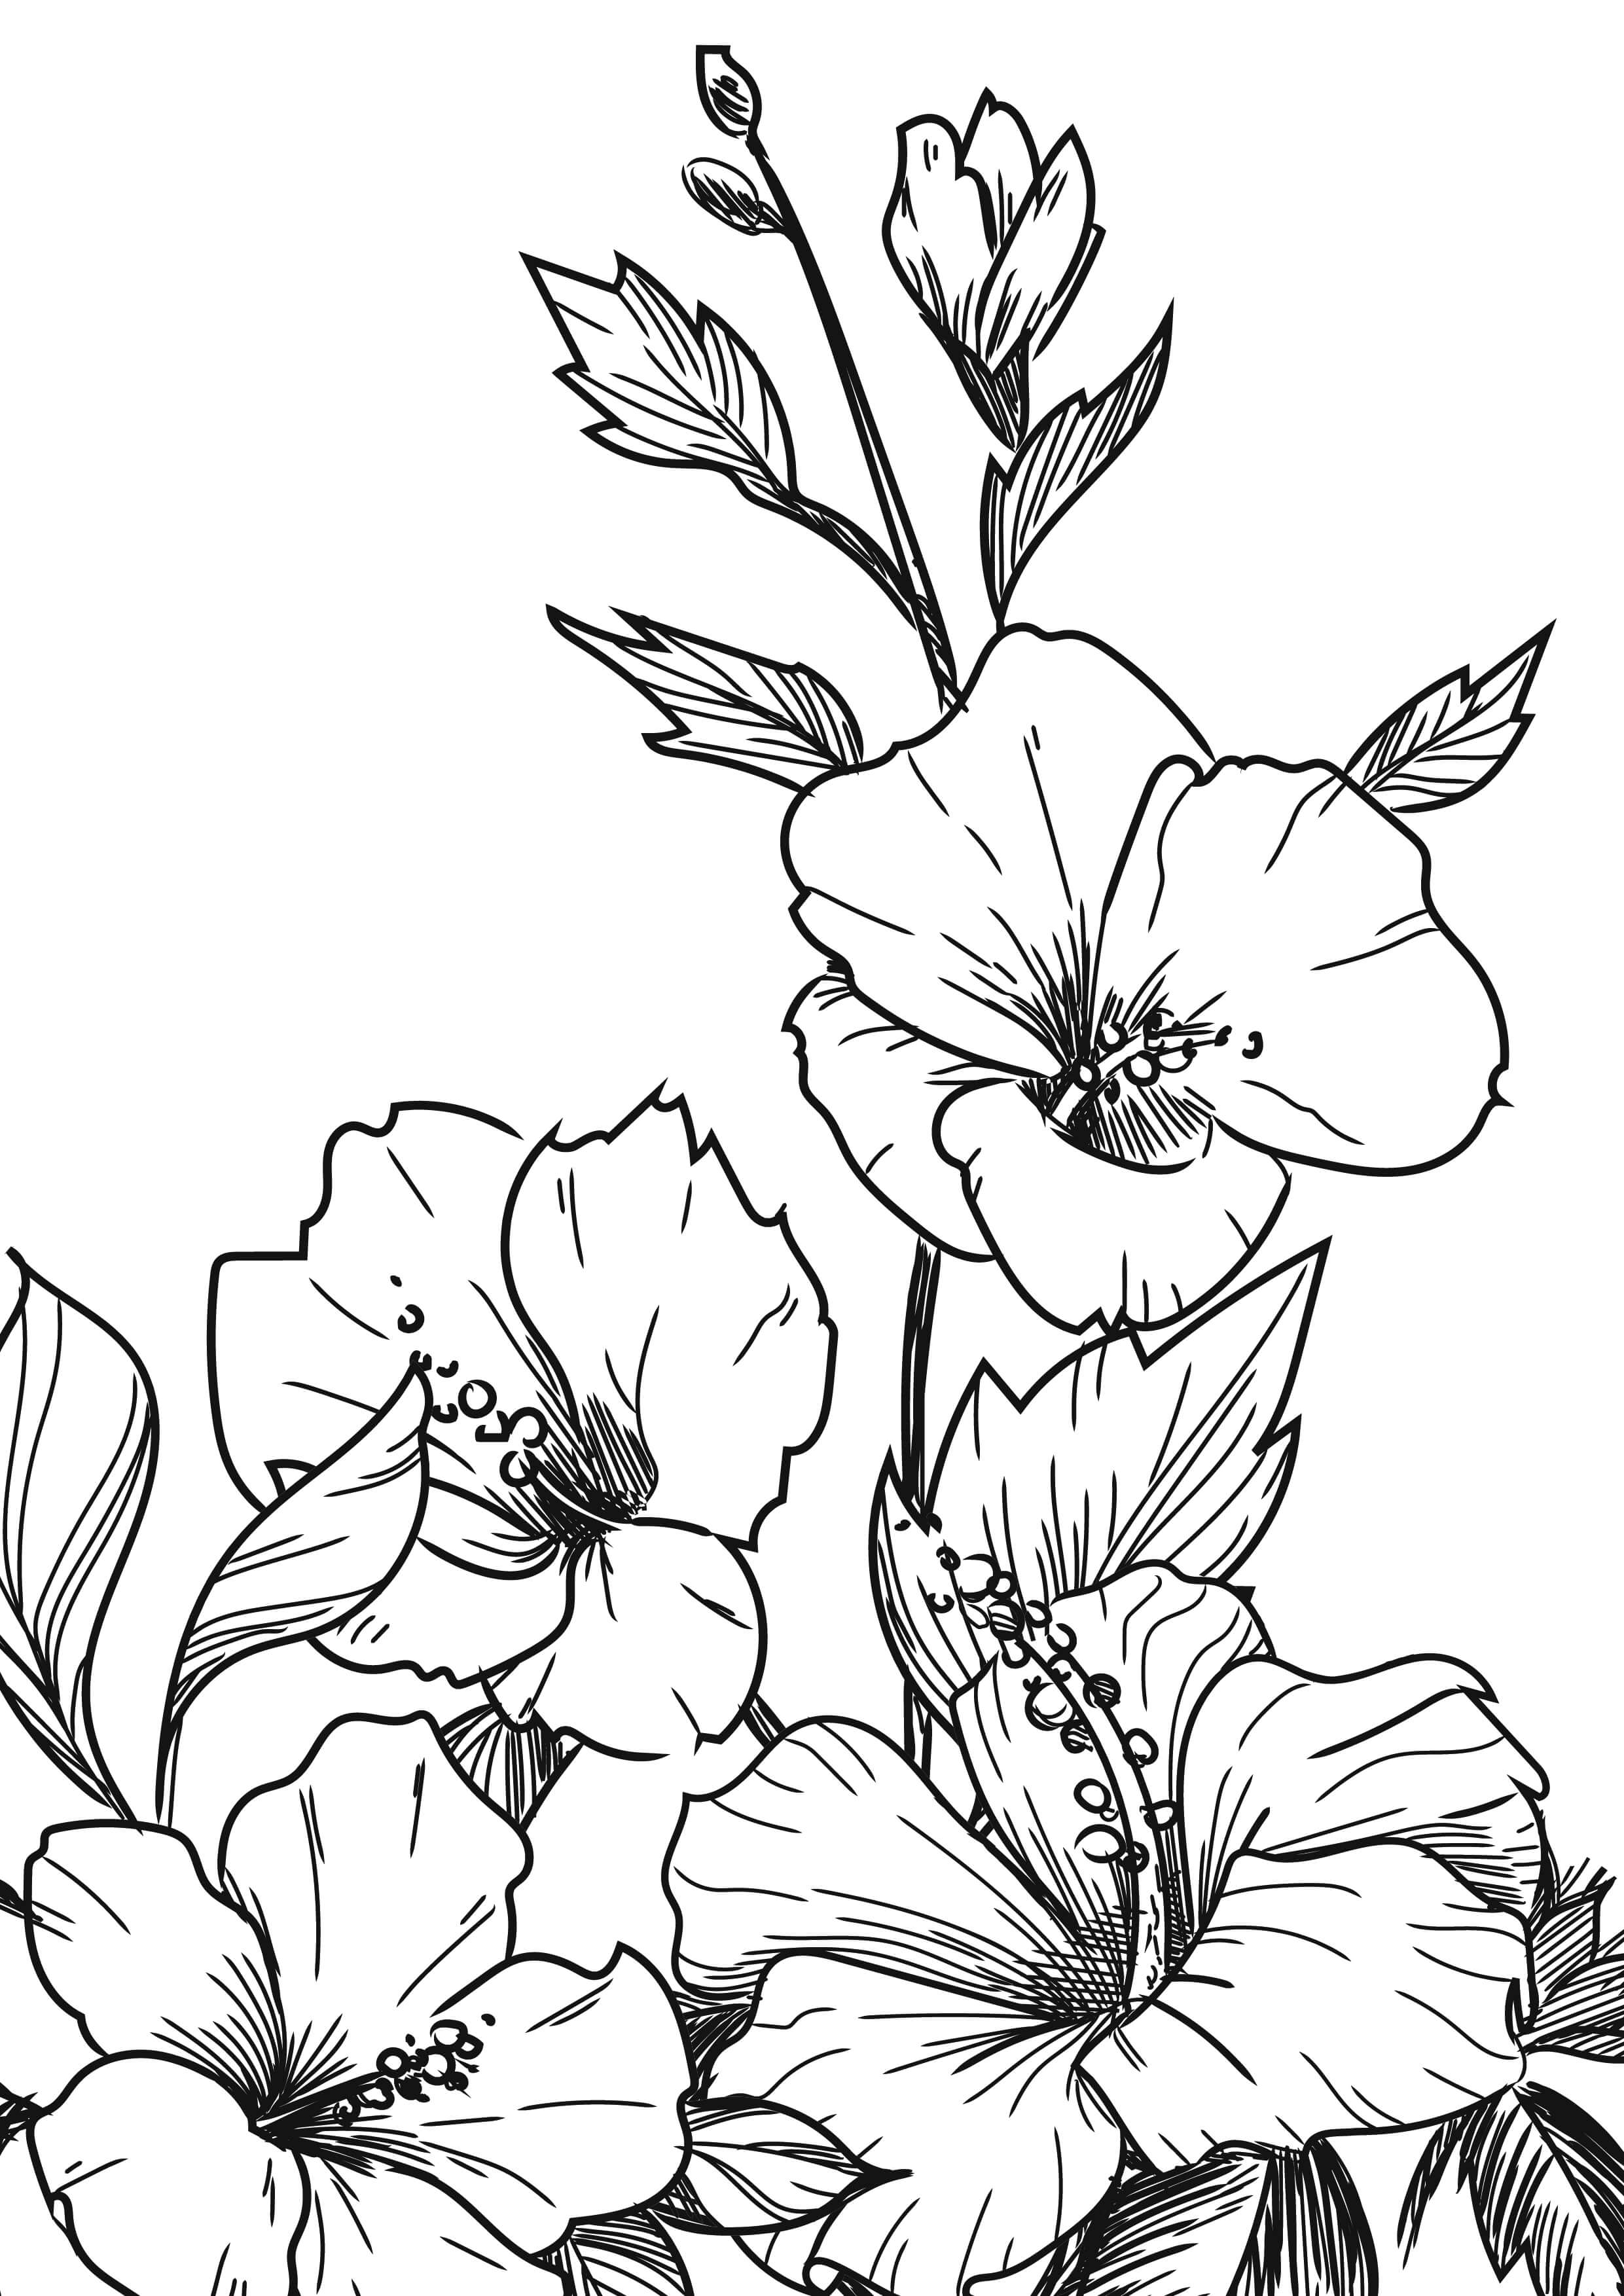 Hibiscus Bouquet coloring pages for adults